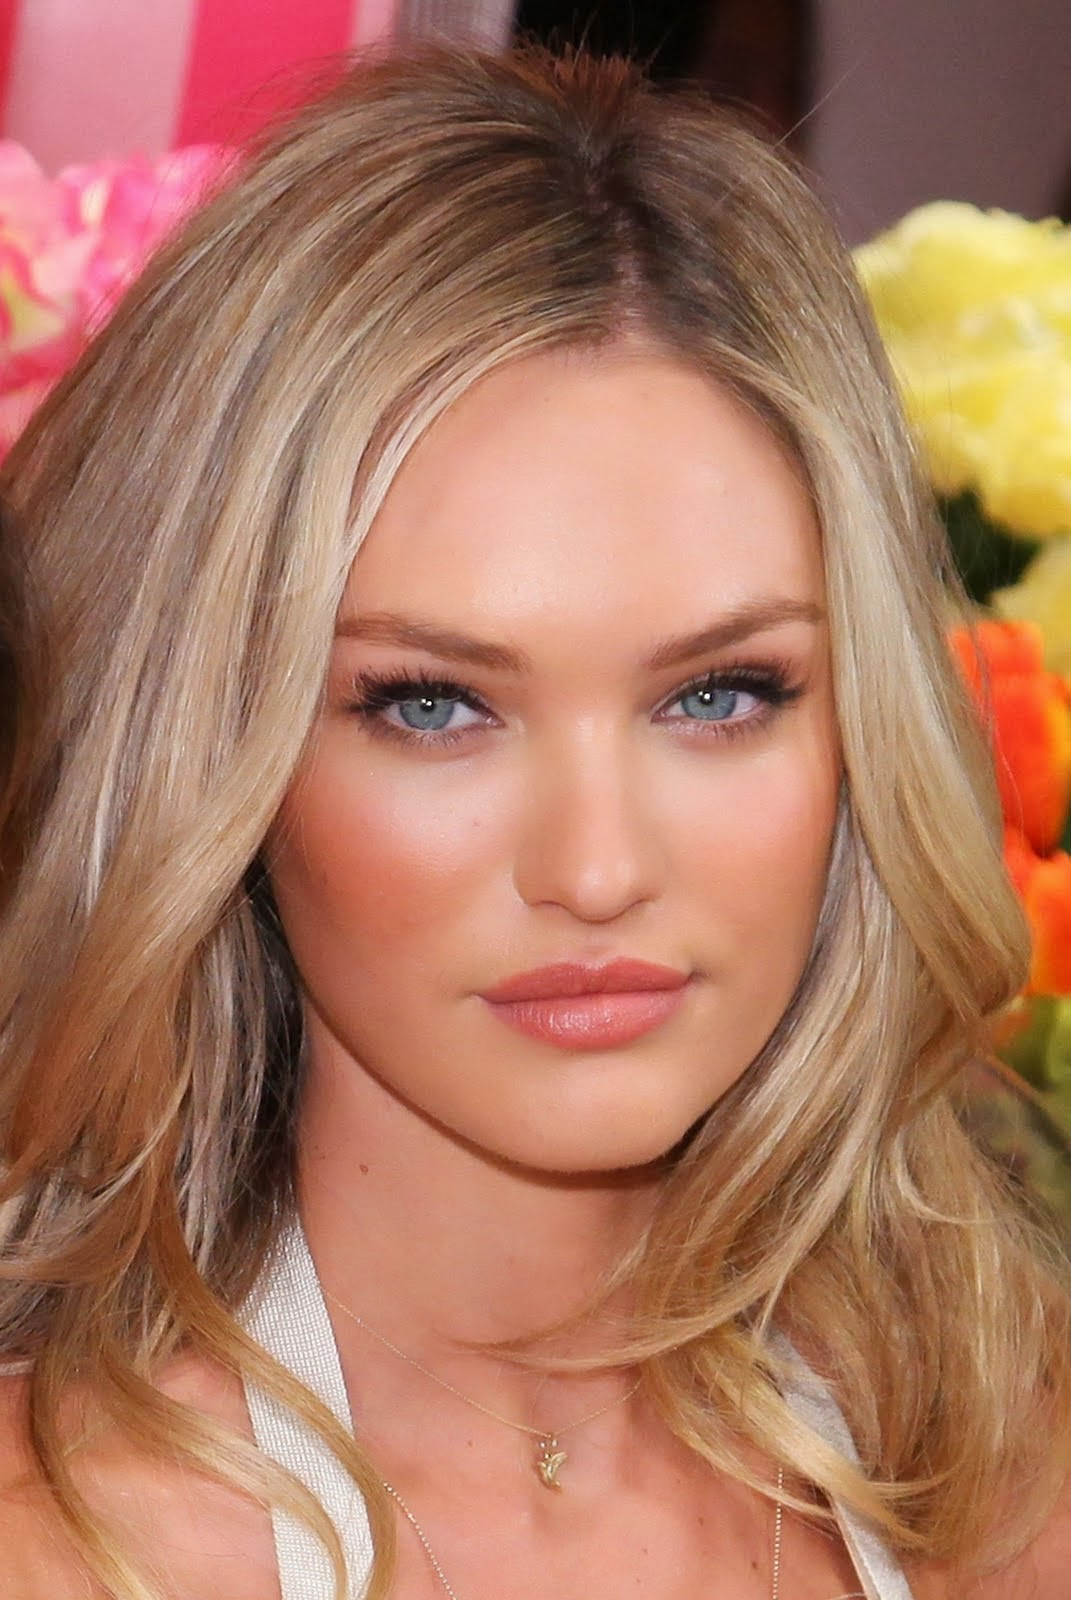 Enjoy These Pics Of Candice Swanepoel Without Make Up